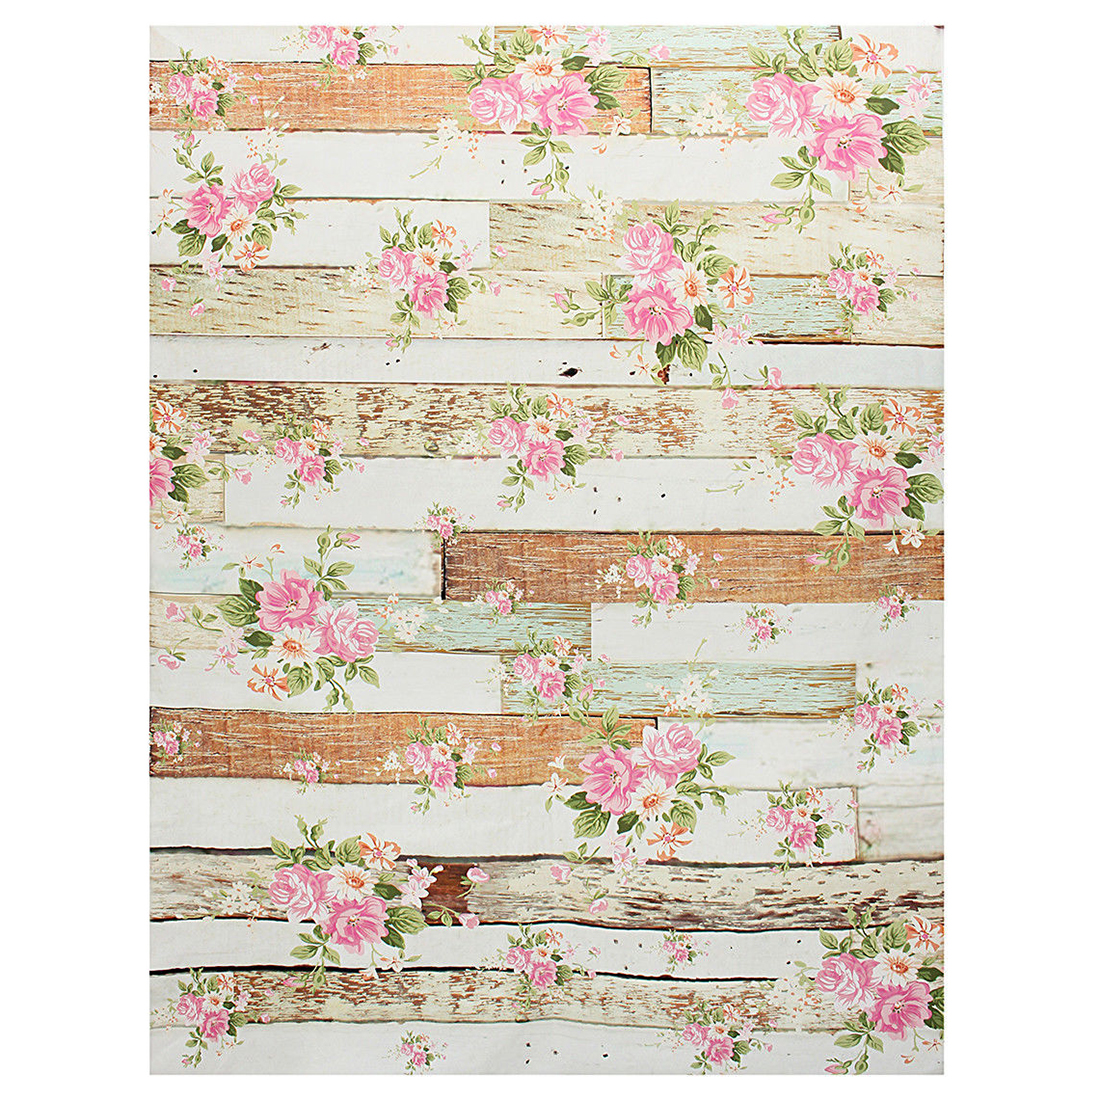 3x5ft Vinyl Photography Backdrop Photo Prop Background Brick Wood Wall Studio #39 Rose Flowers Wood shengyongbao 7x5ft vinyl custom photography backdrop prop white brick wall theme studio background nwz 02